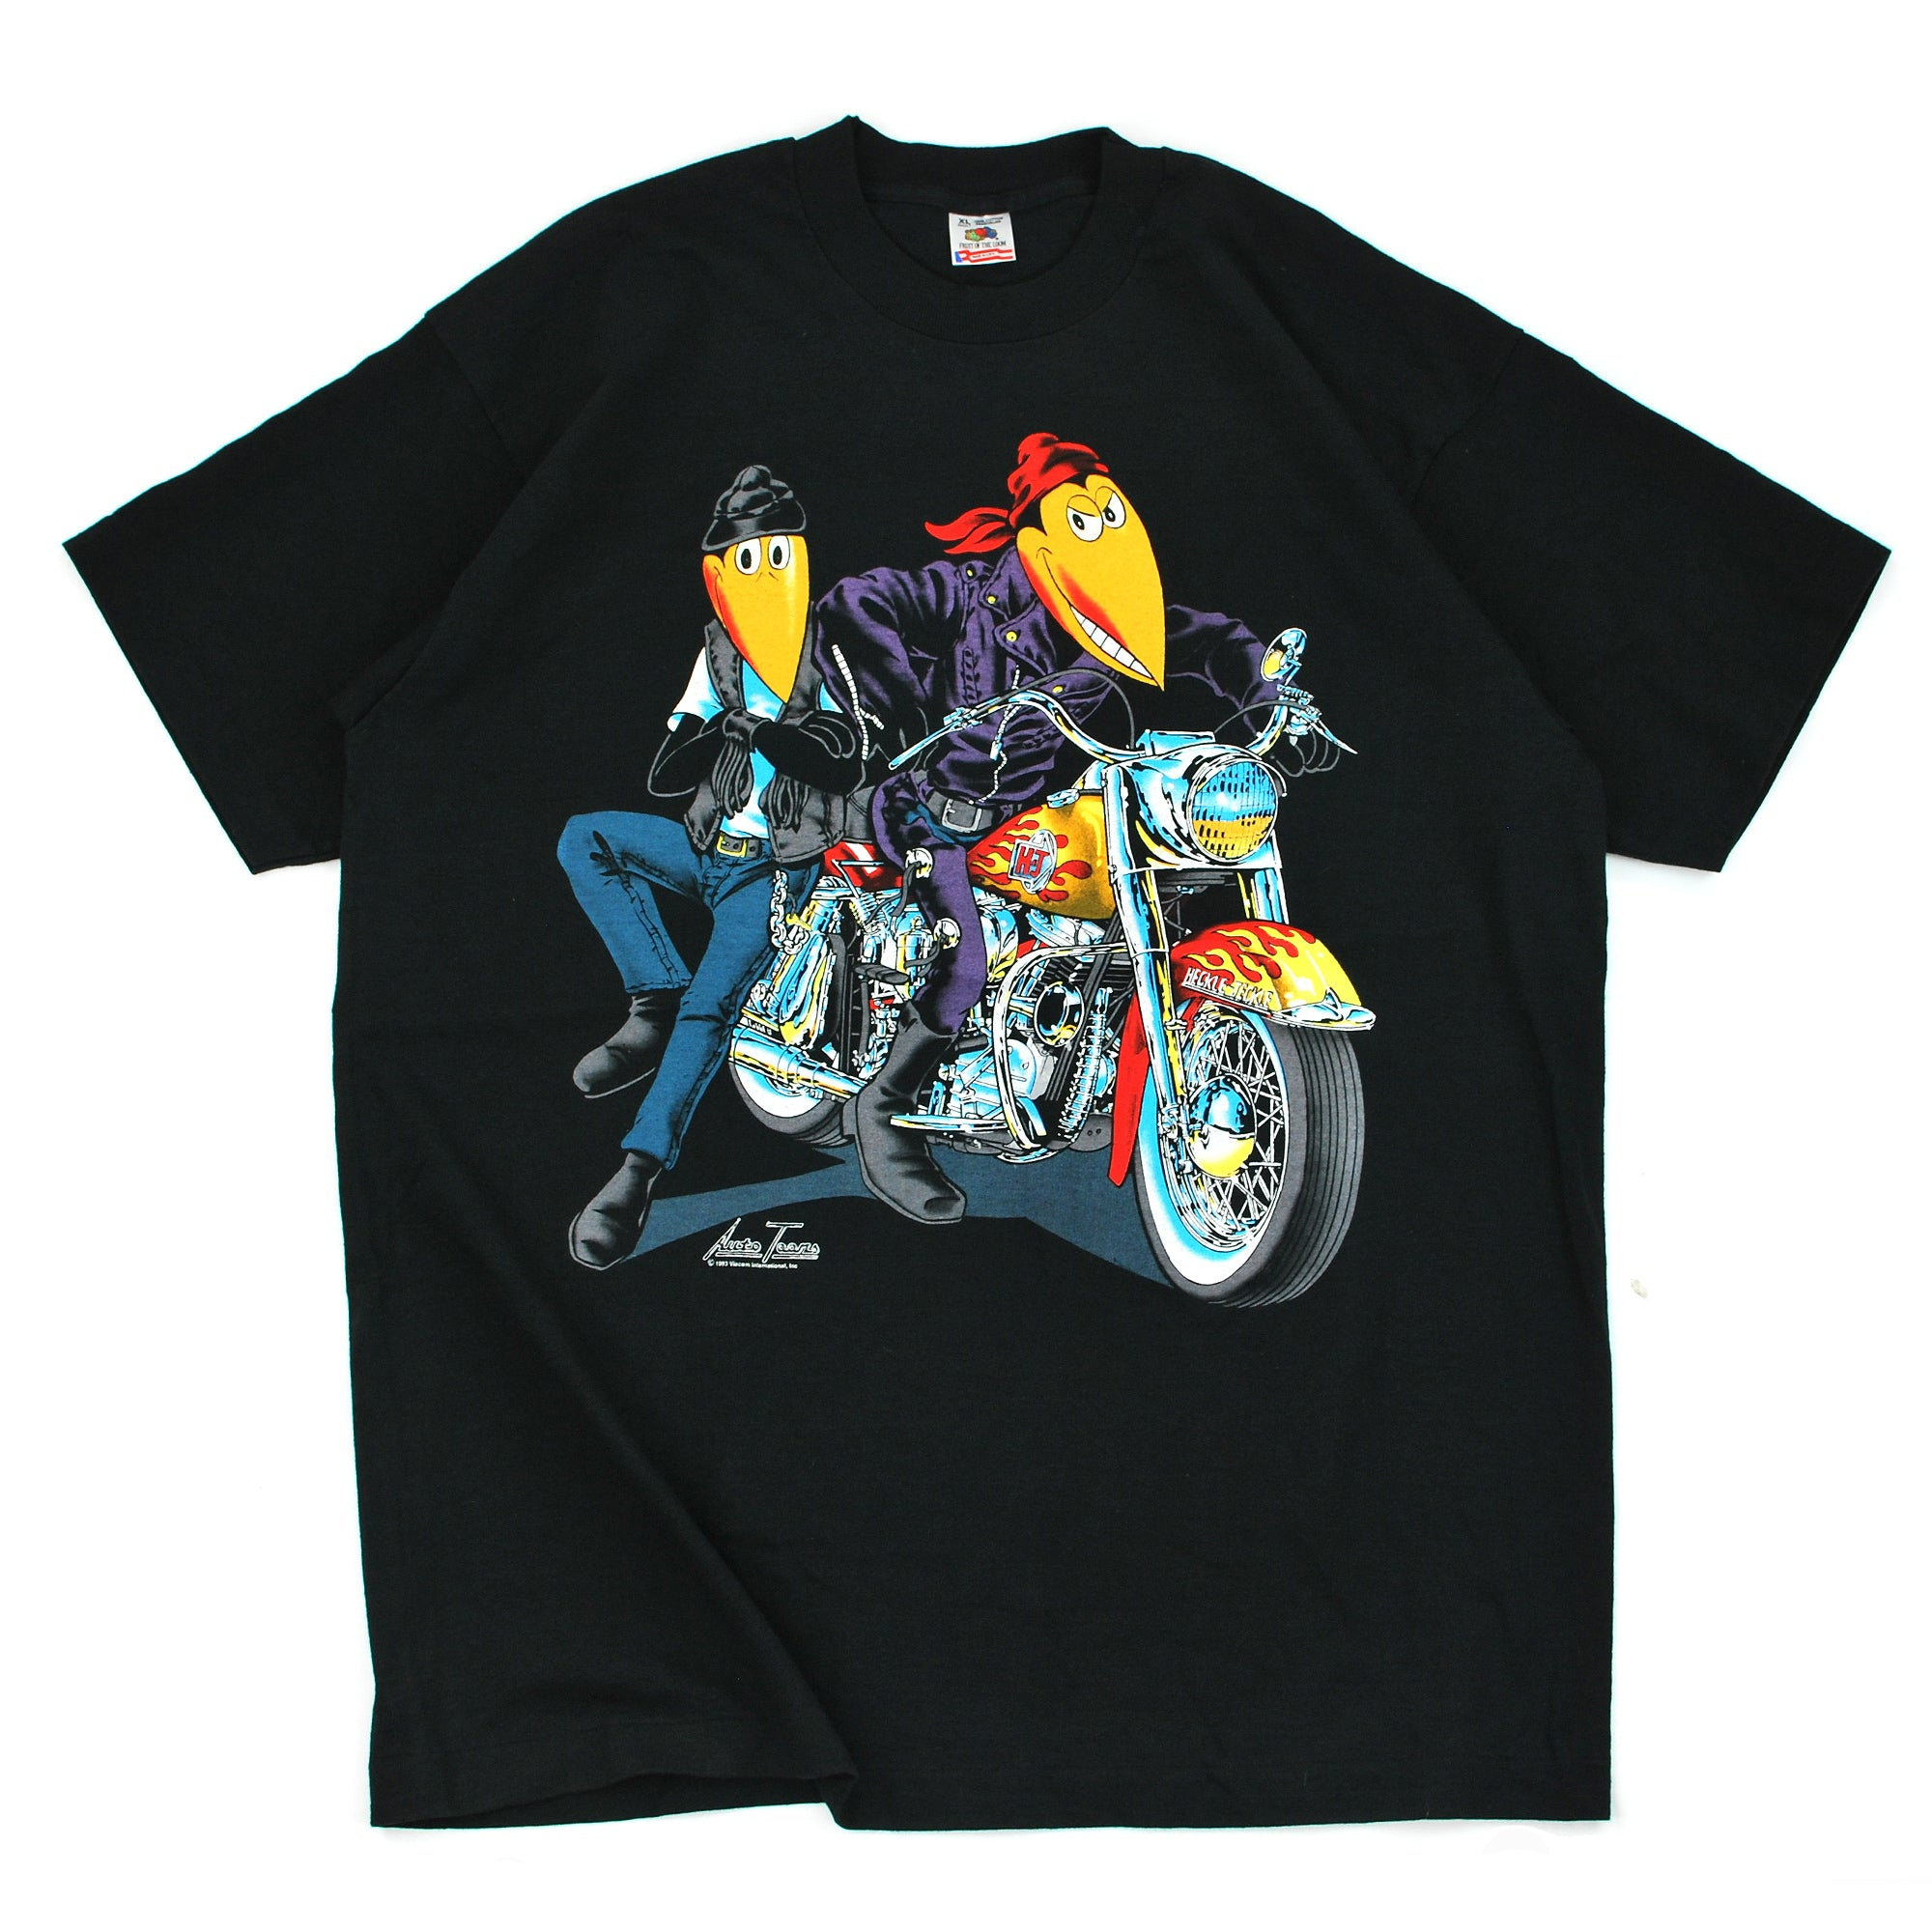 Vintage Heckle and Jeckle Tee